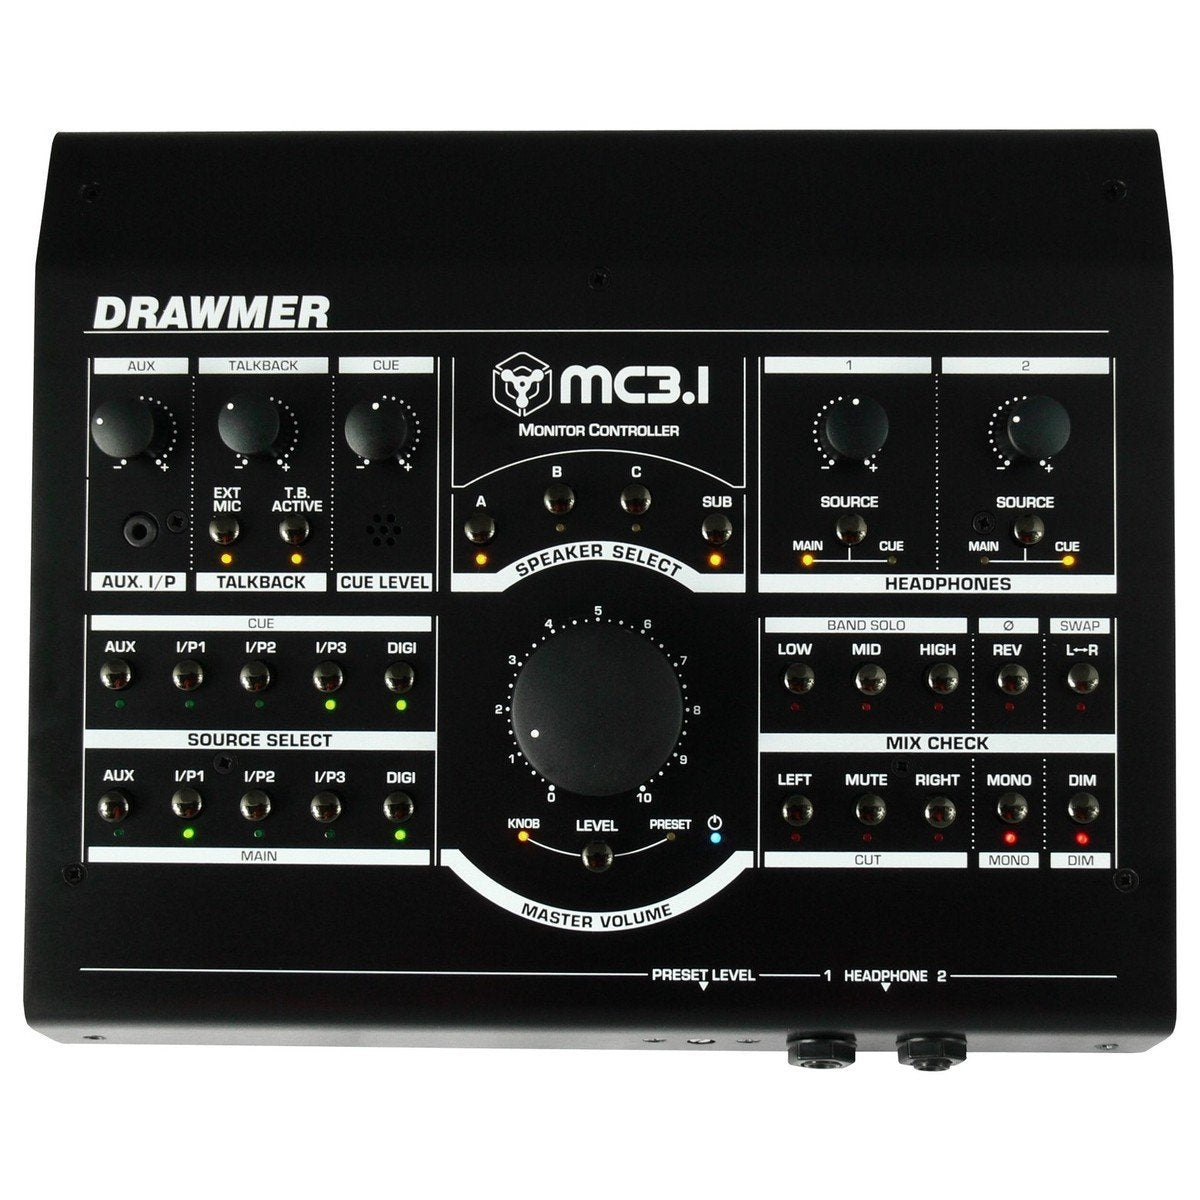 Drawmer MC3.1 Active Monitor Controller